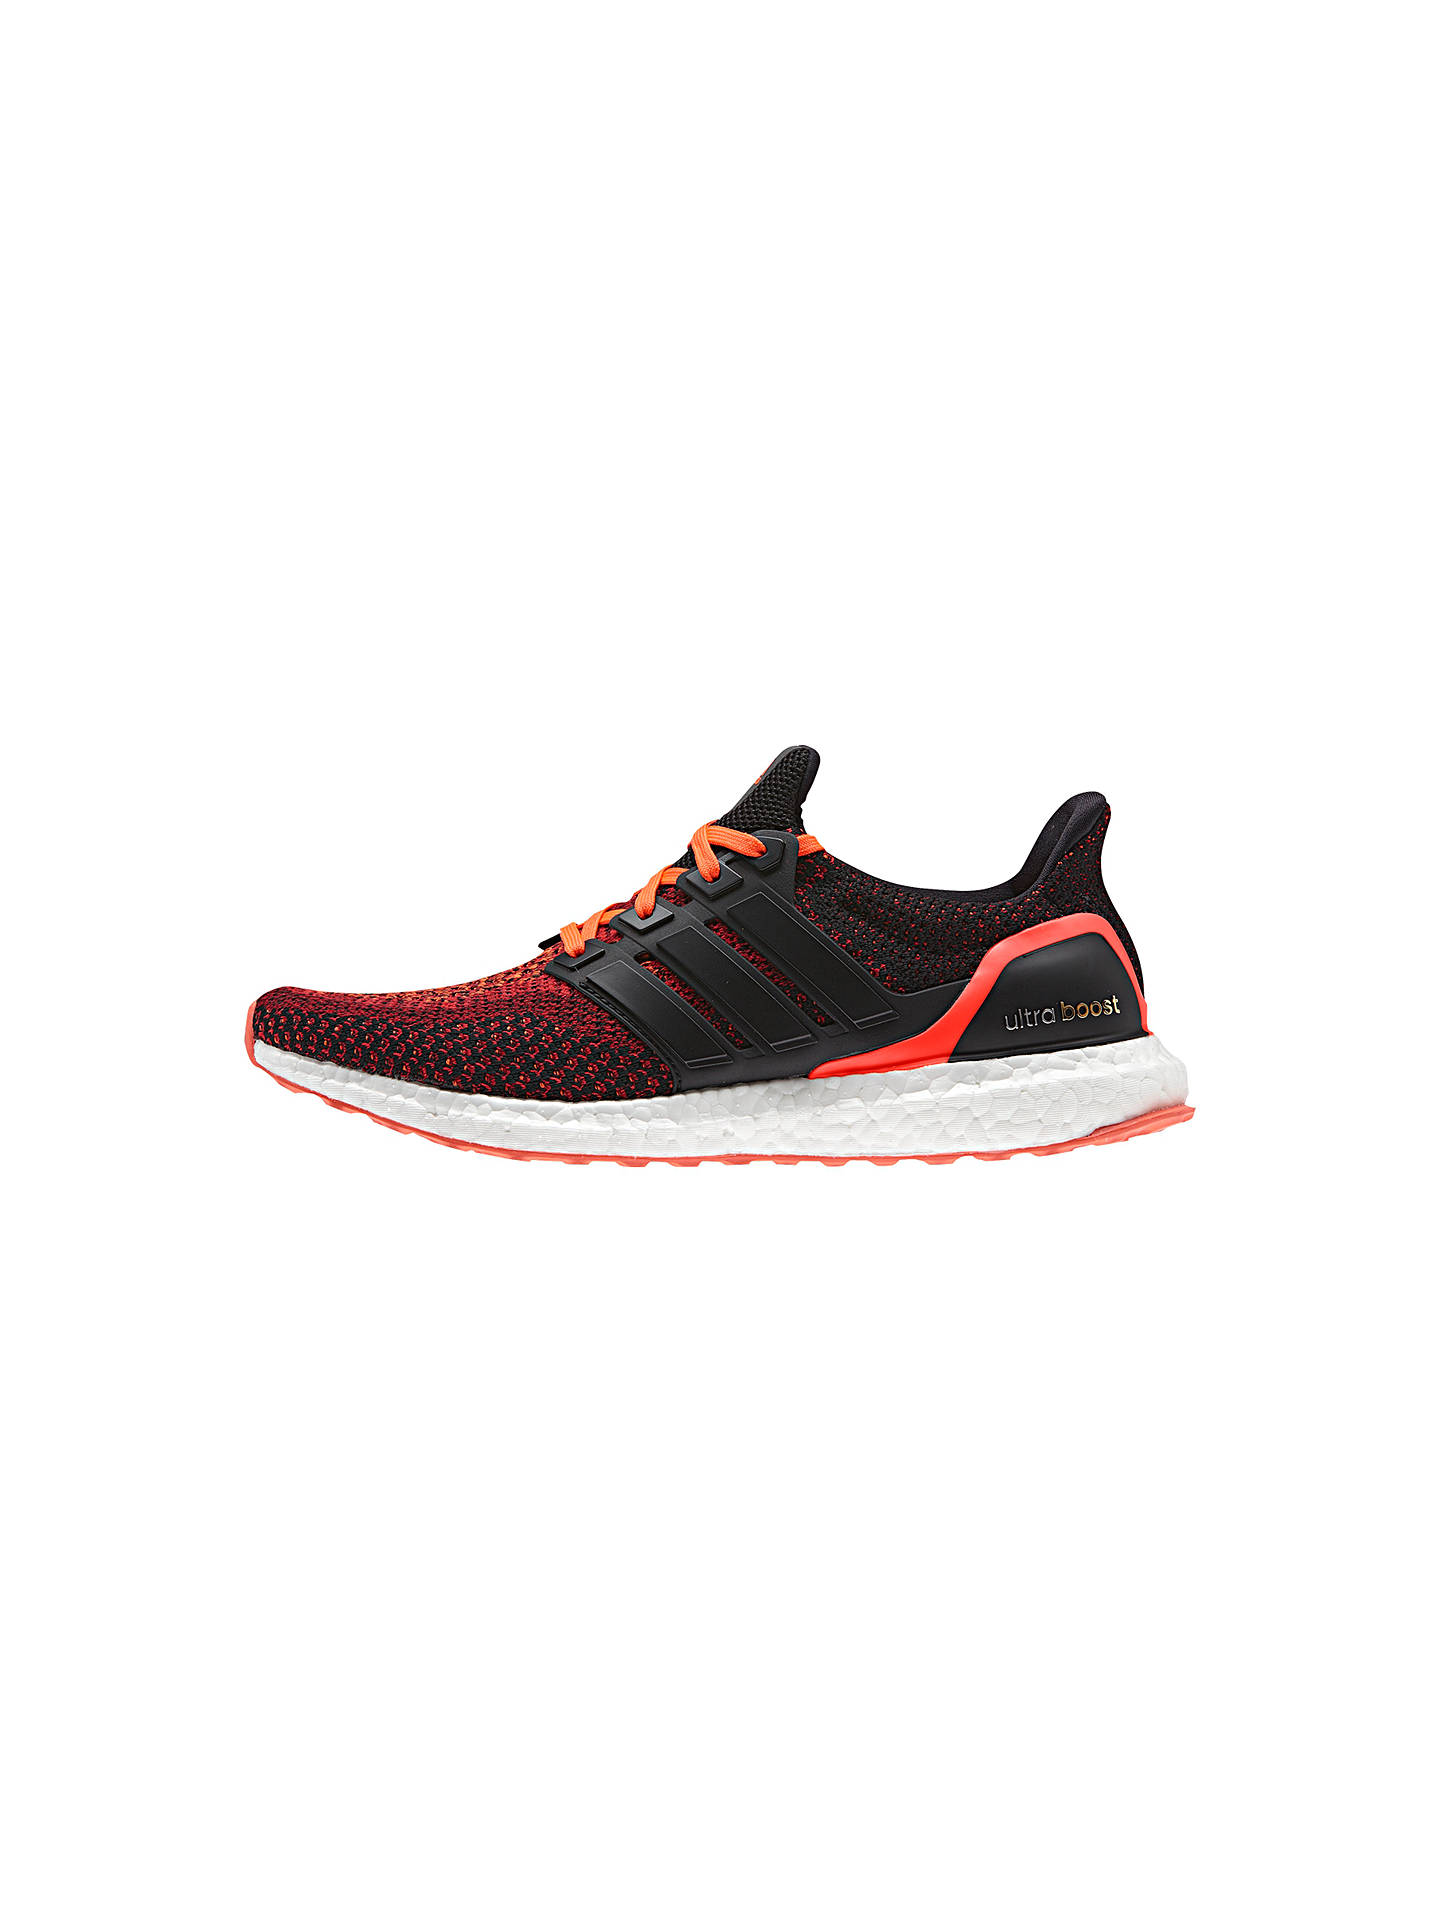 d145d7fcd Adidas Ultra Boost Men s Running Shoes at John Lewis   Partners